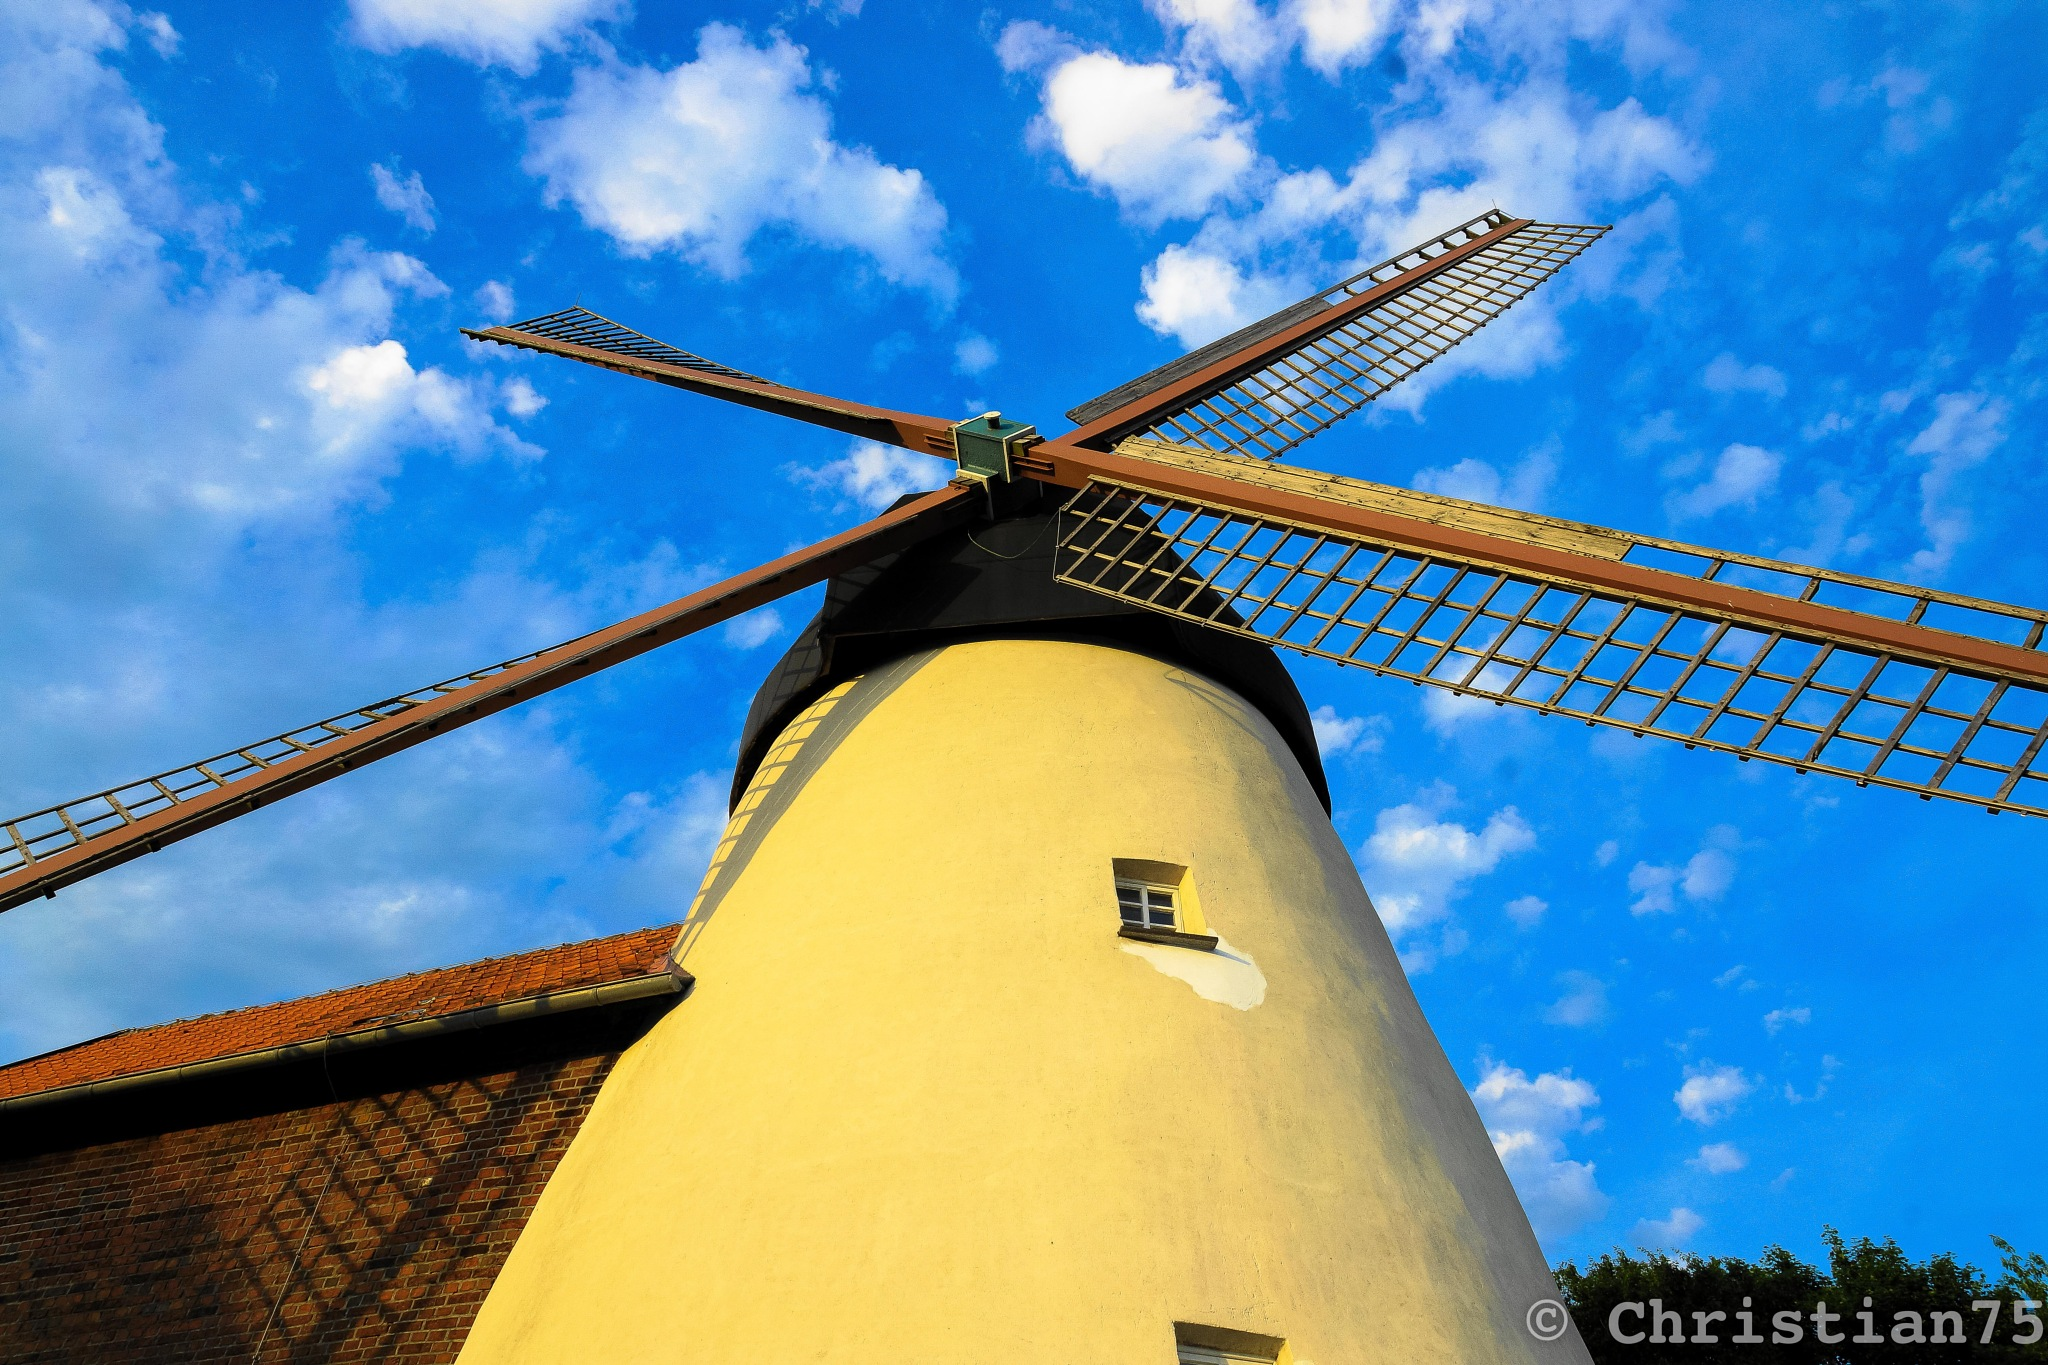 The old mill by Christian75